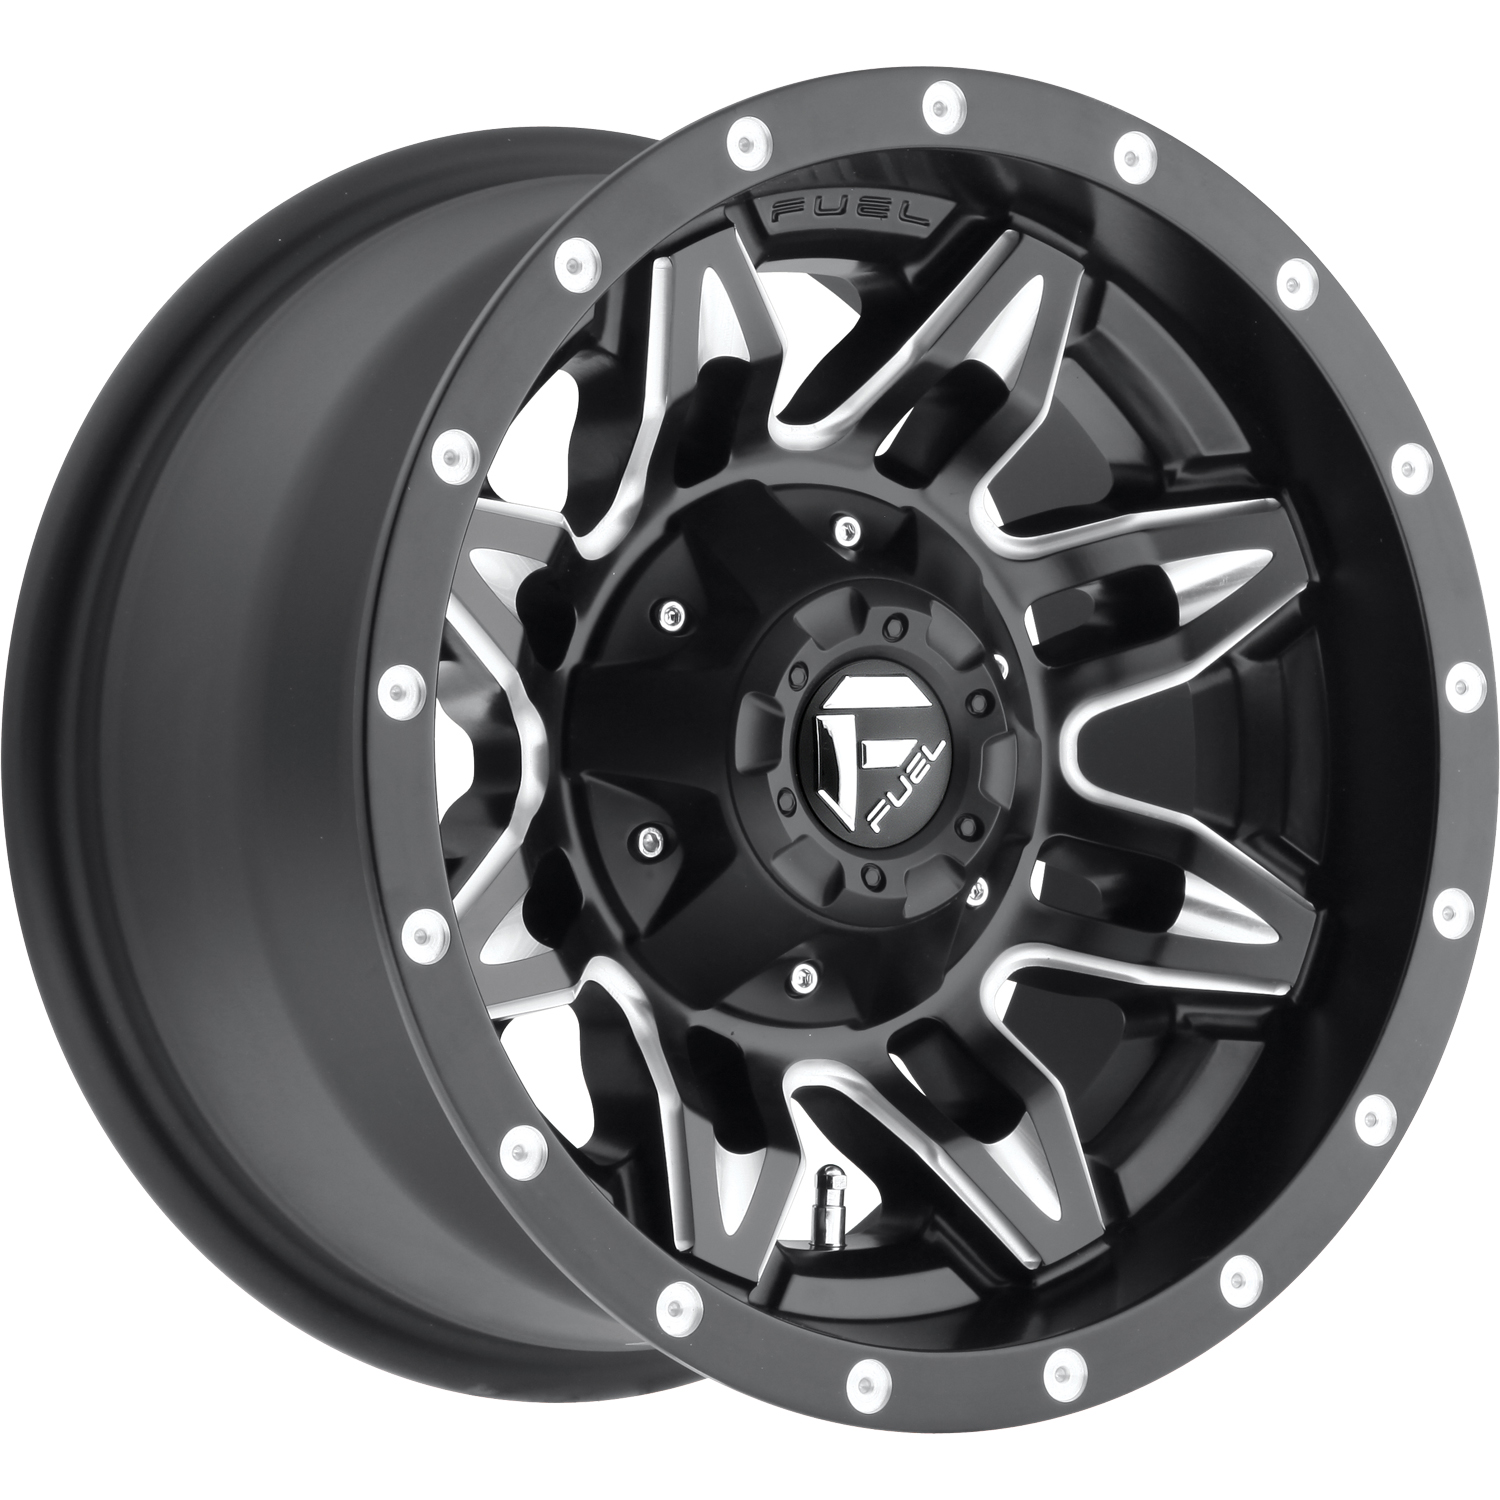 Fuel Lethal 15x8 18